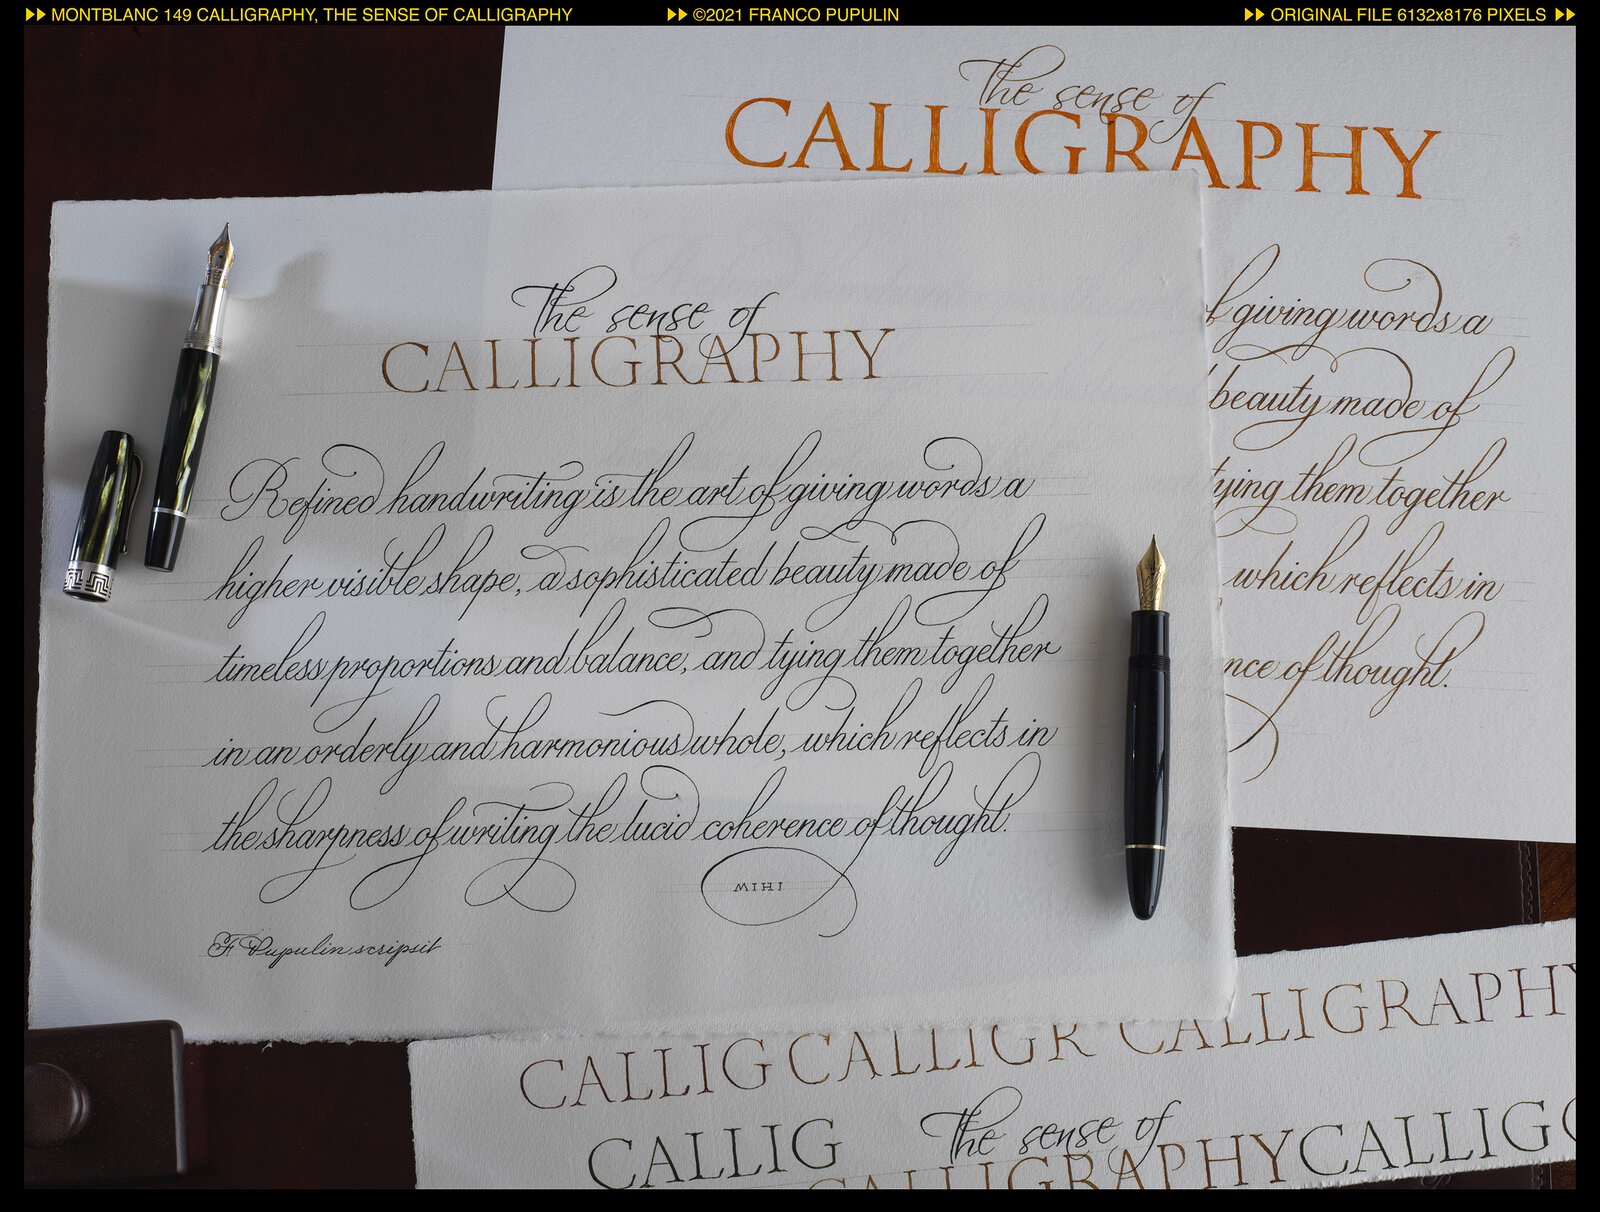 Montblanc 149 Calligraphy, The sense of Calligraphy with trials ©FP.jpg